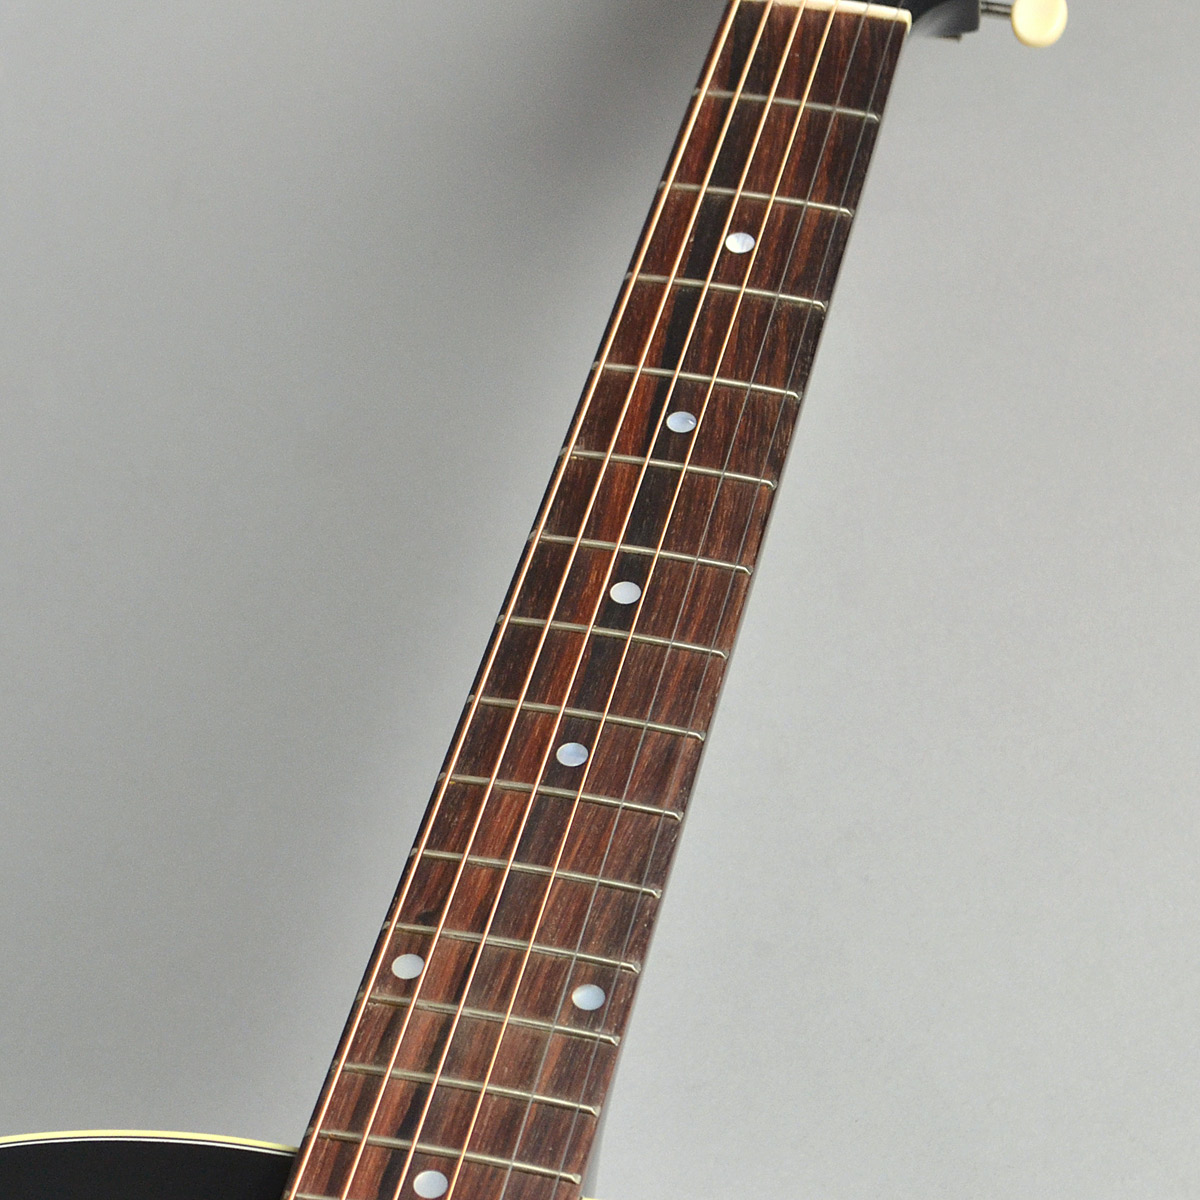 Monthly Limited 1960s J-45の指板画像